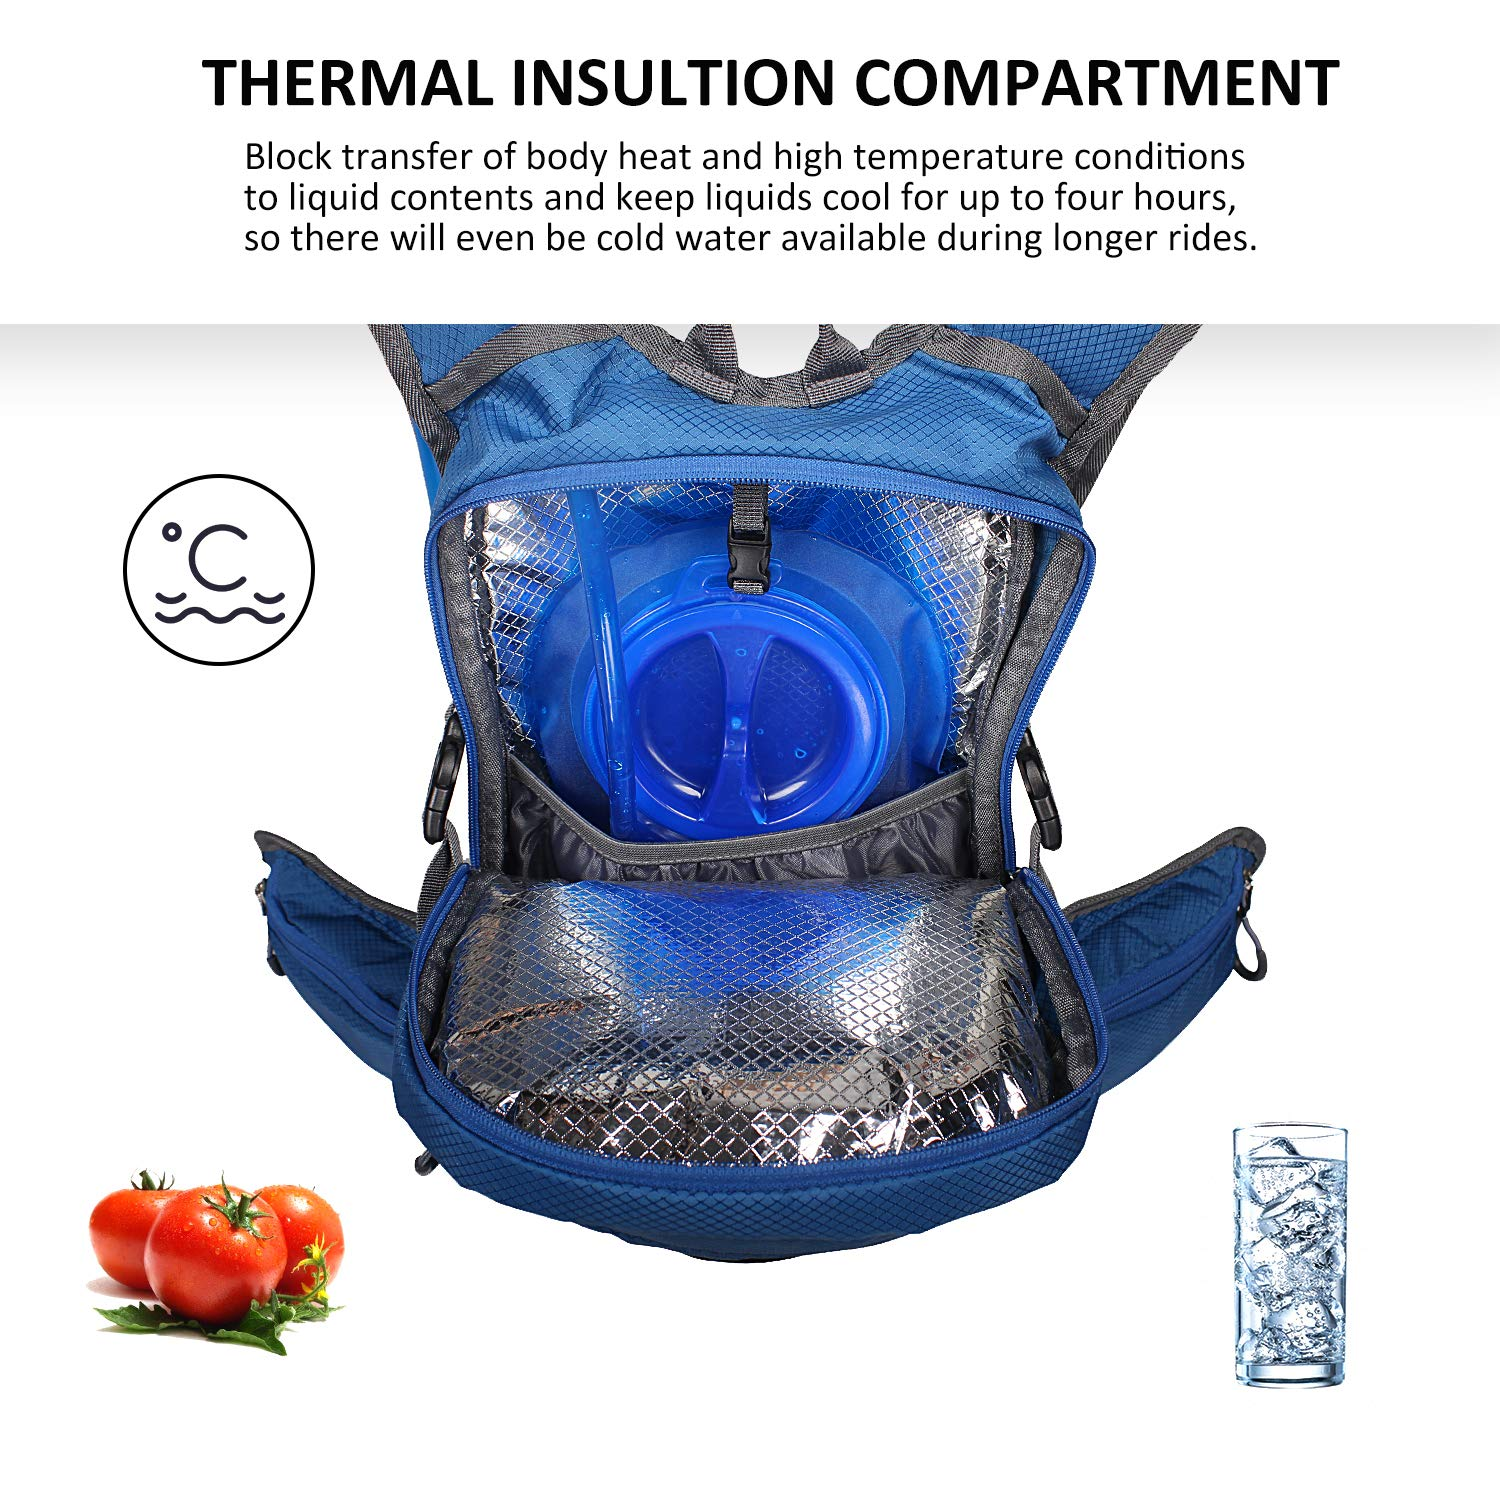 Amazon.com : Unigear Hydration Packs Backpack with 2L TPU Water Bladder Reservoir, Thermal Insulation Pack Keeps Liquid Cool up to 4 Hours for Running, ...